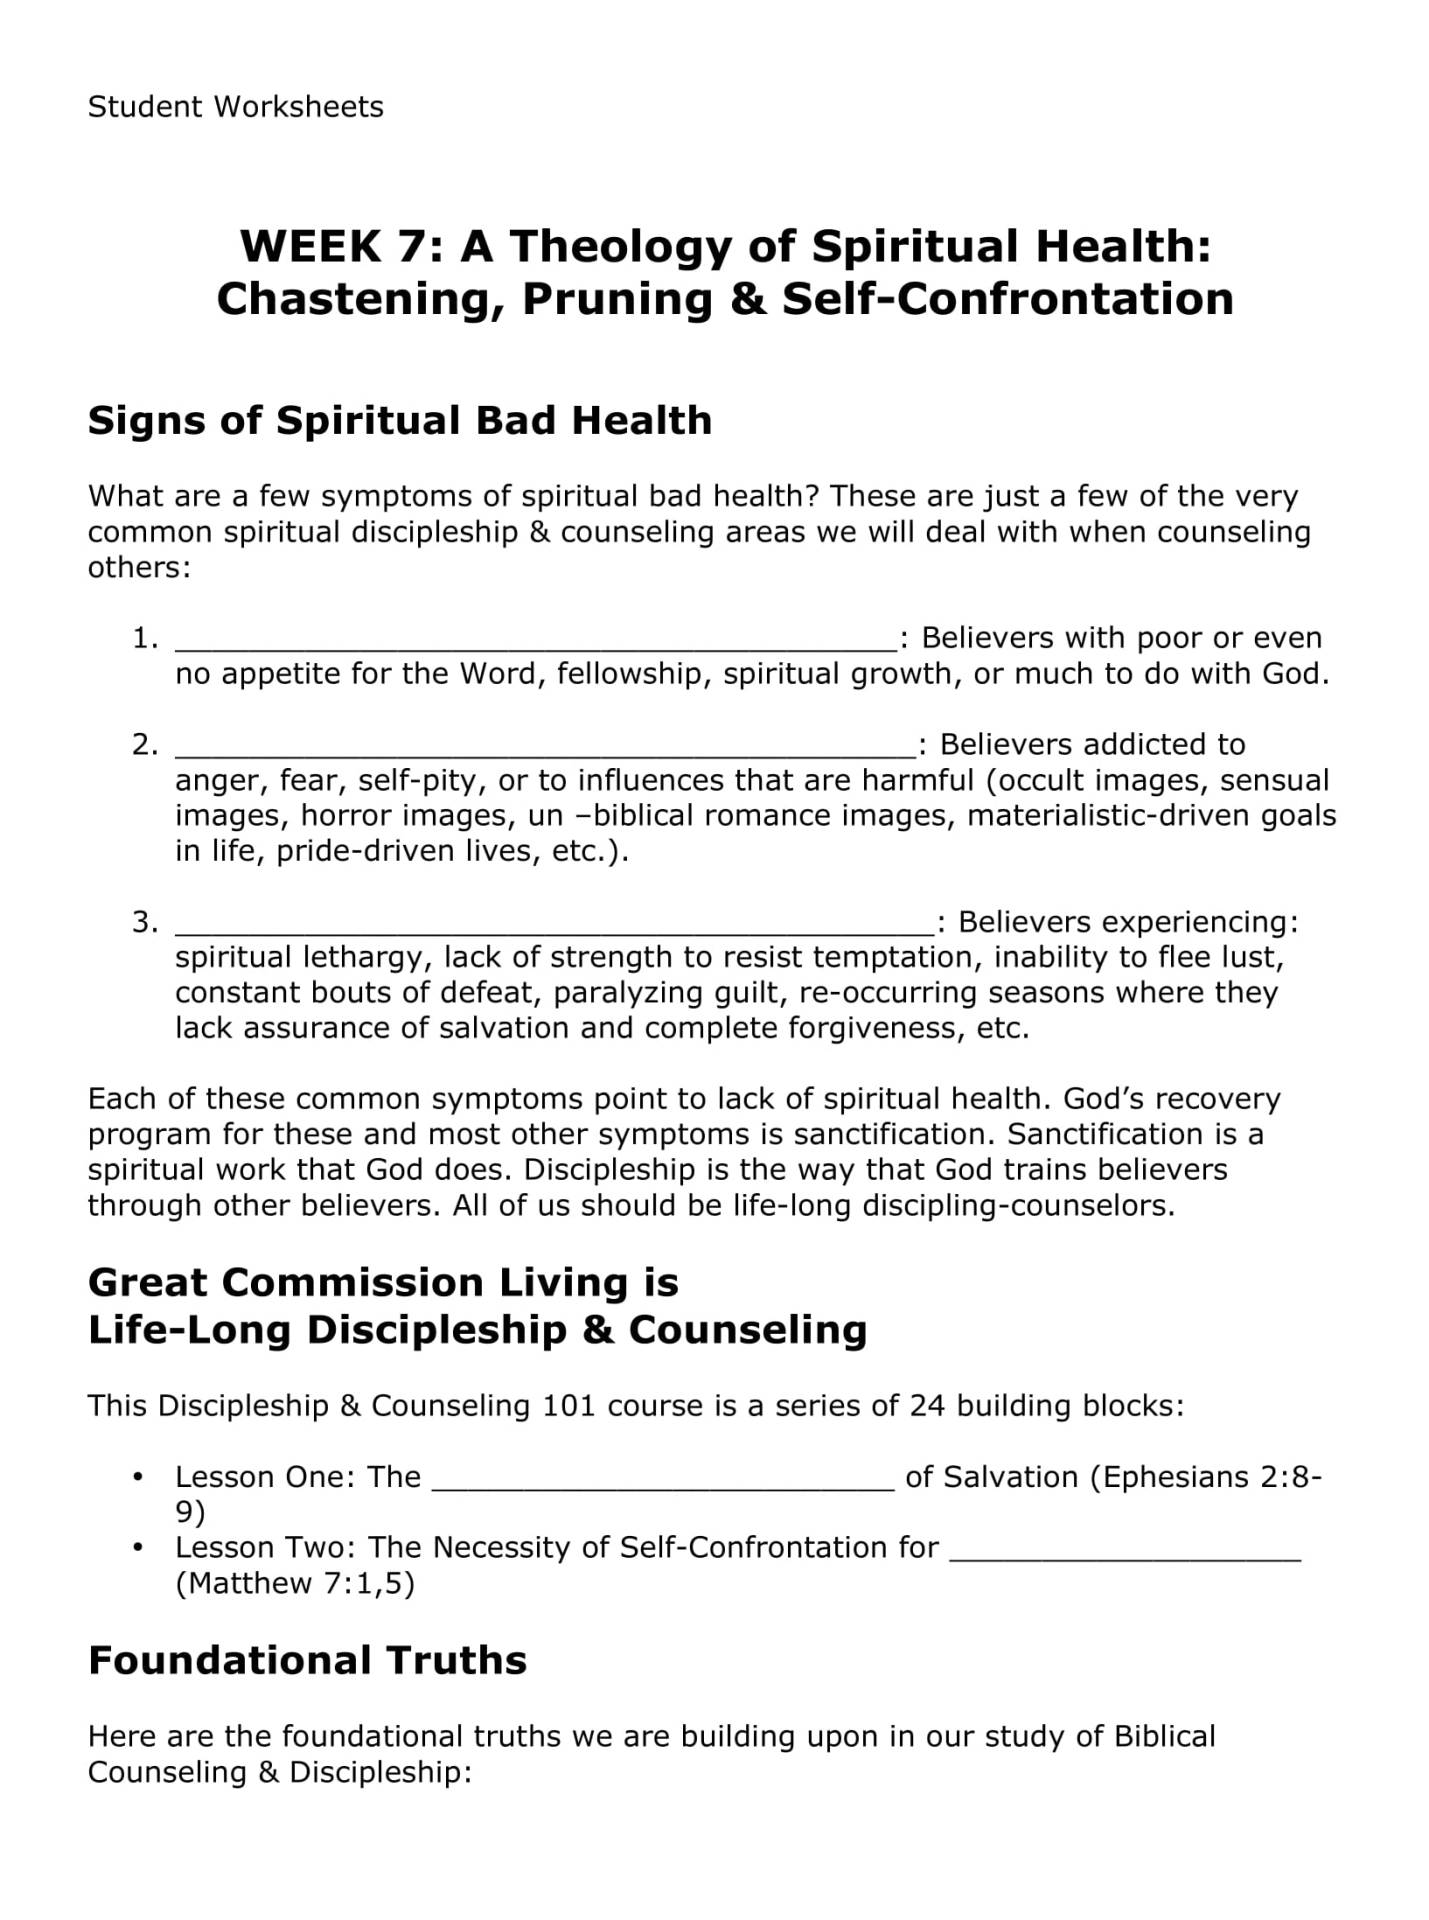 BC&D-07 - A Theology Of Spiritual Health - Chastening, Pruning, And Self-Confrontation-08